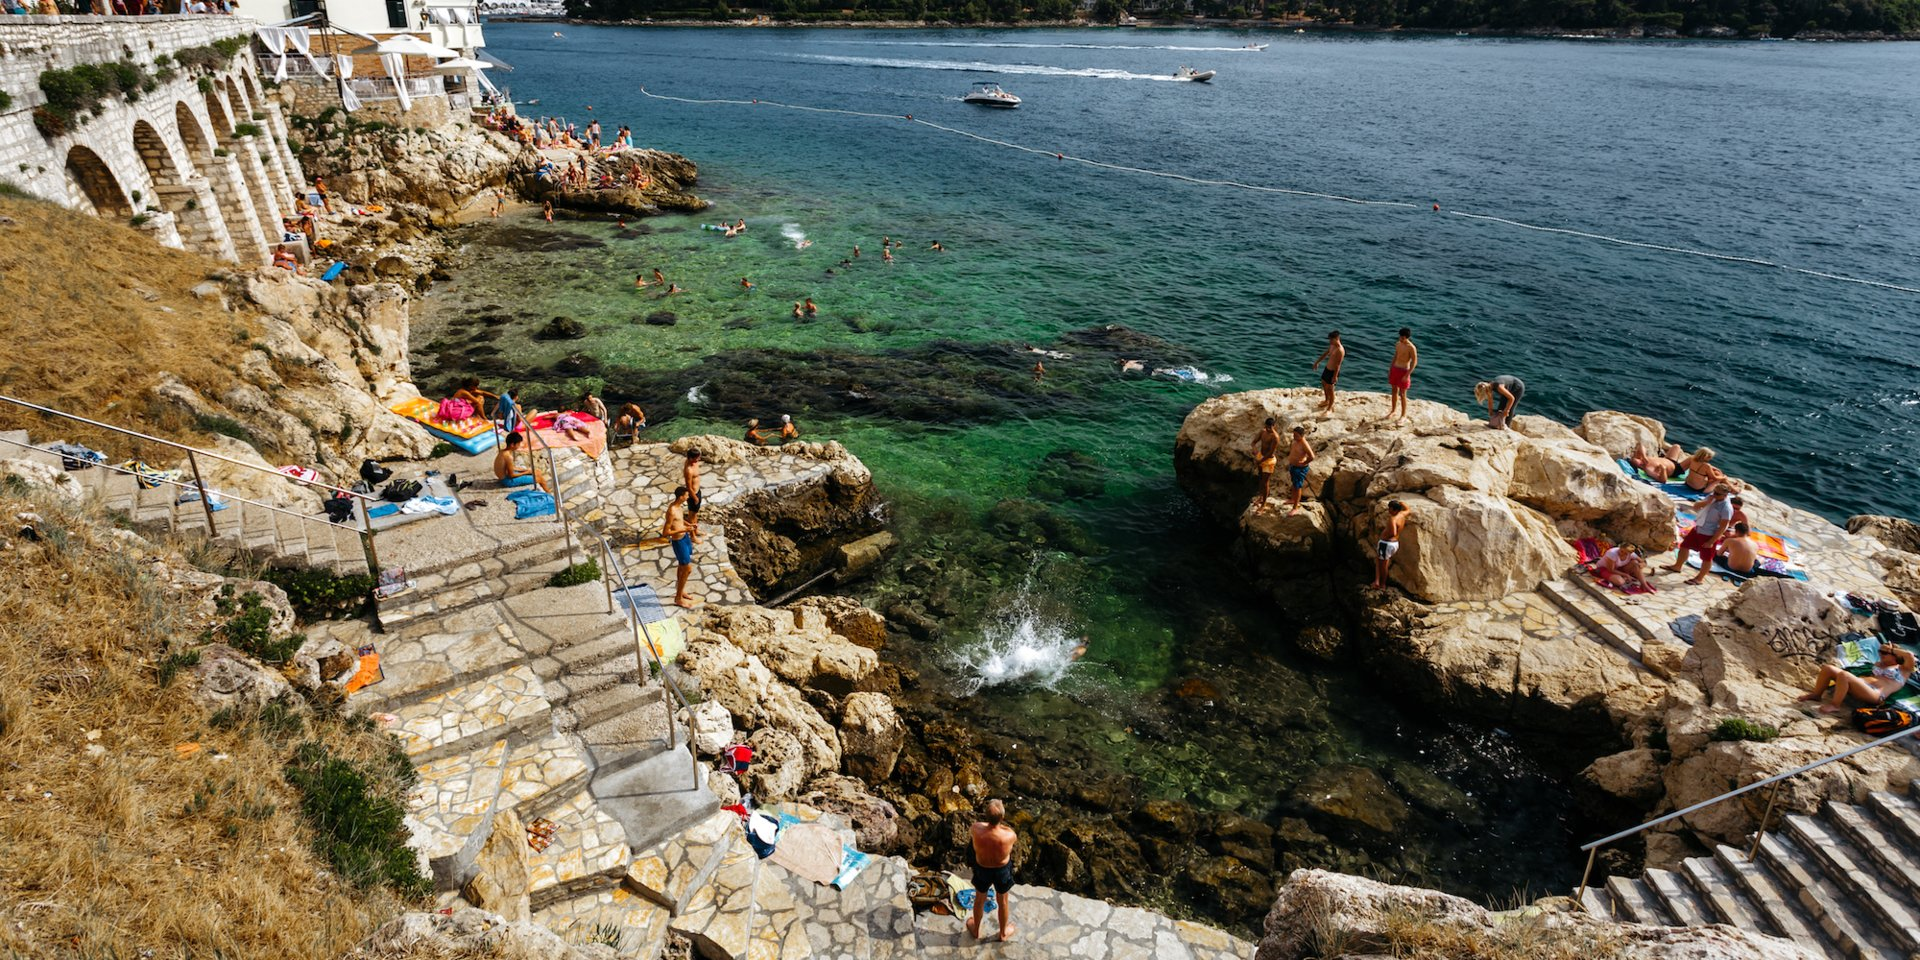 The 19 most overlooked places in for a summer holiday